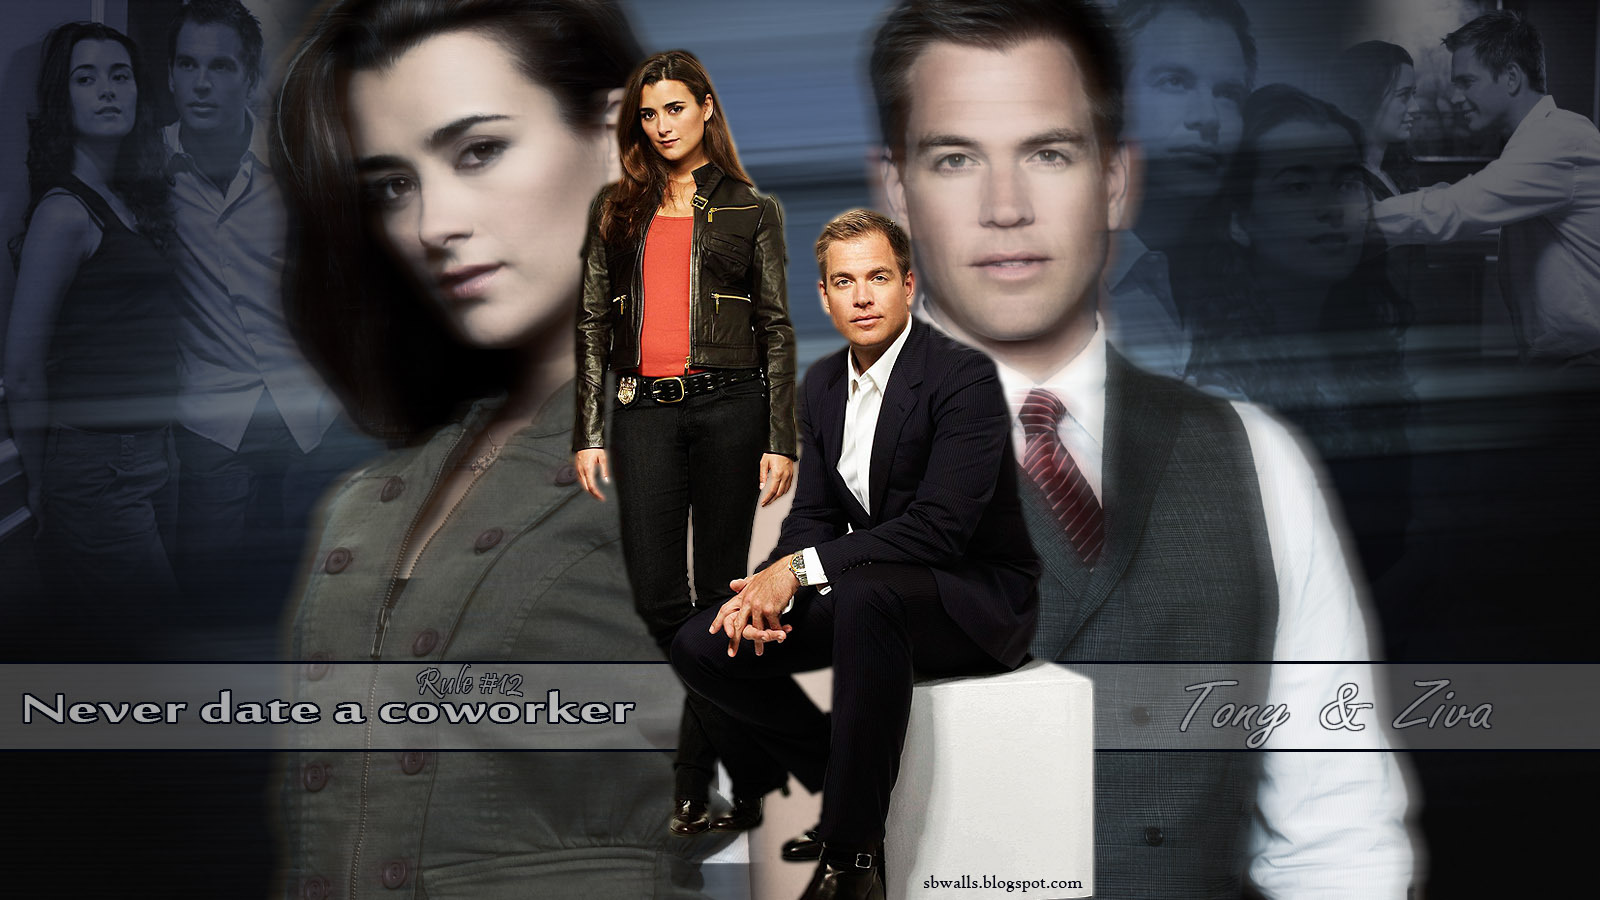 Tony Ziva Rule 12 Ncis Wallpaper 14783963 Fanpop Page 9